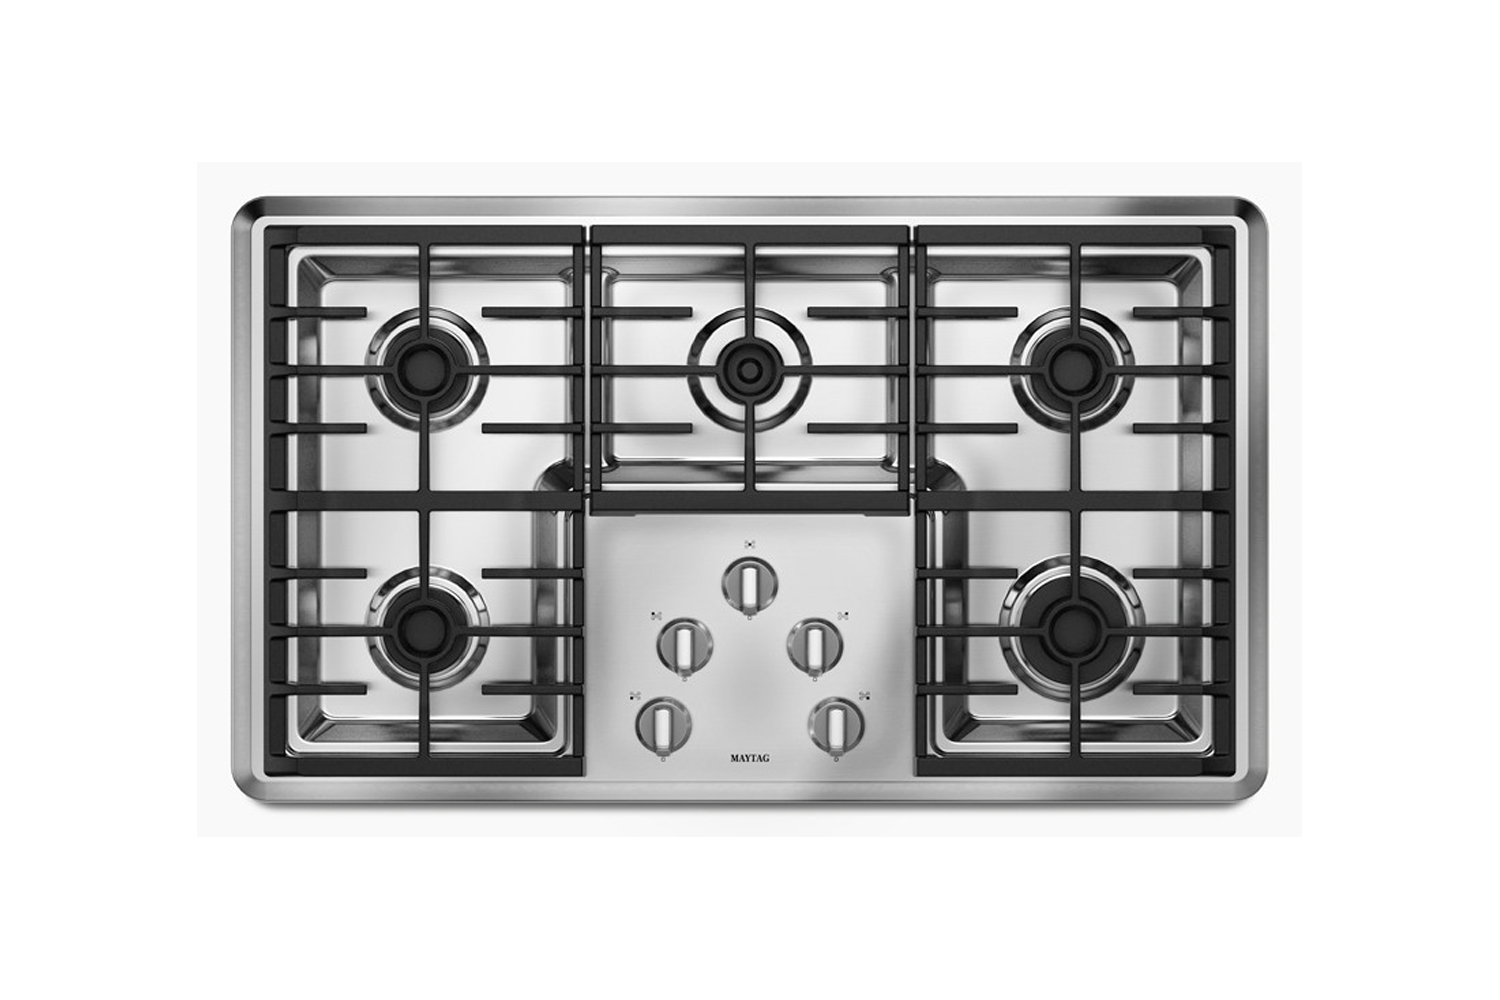 the maytag 36 inch gas cooktop (mgc7536ds) is \$\1,049 at home depot. 18